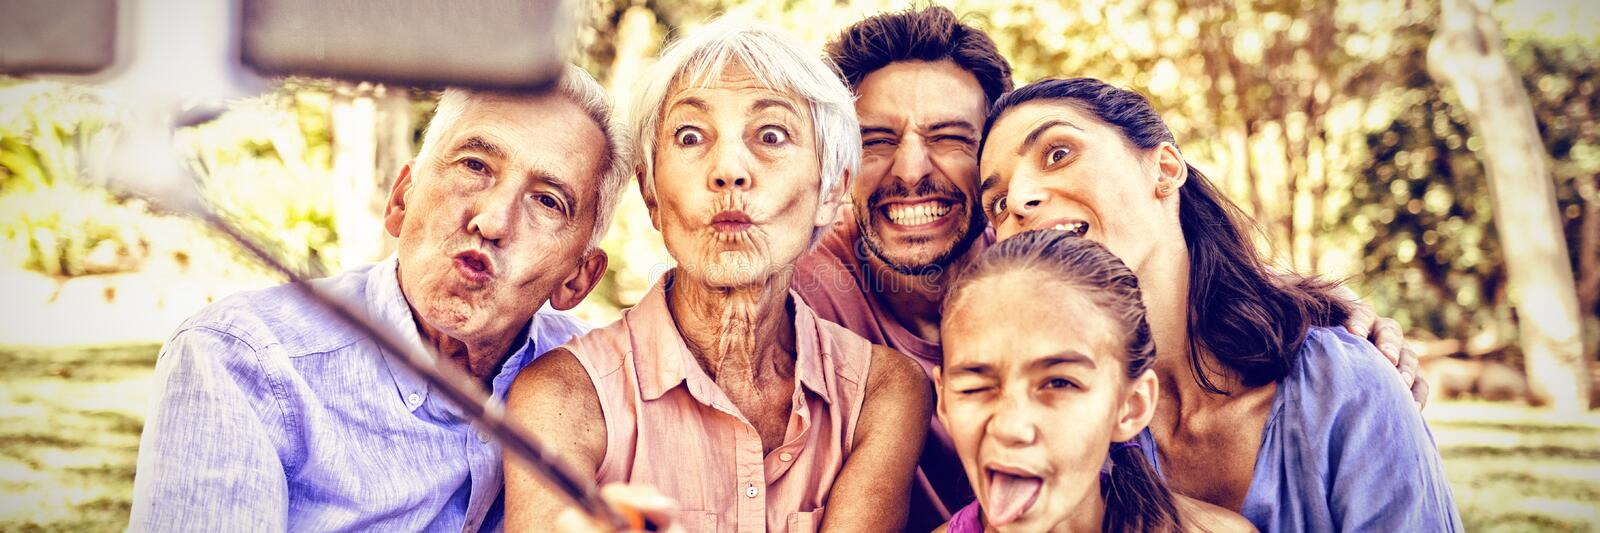 Family making funny faces while taking a selfie in the park stock photo